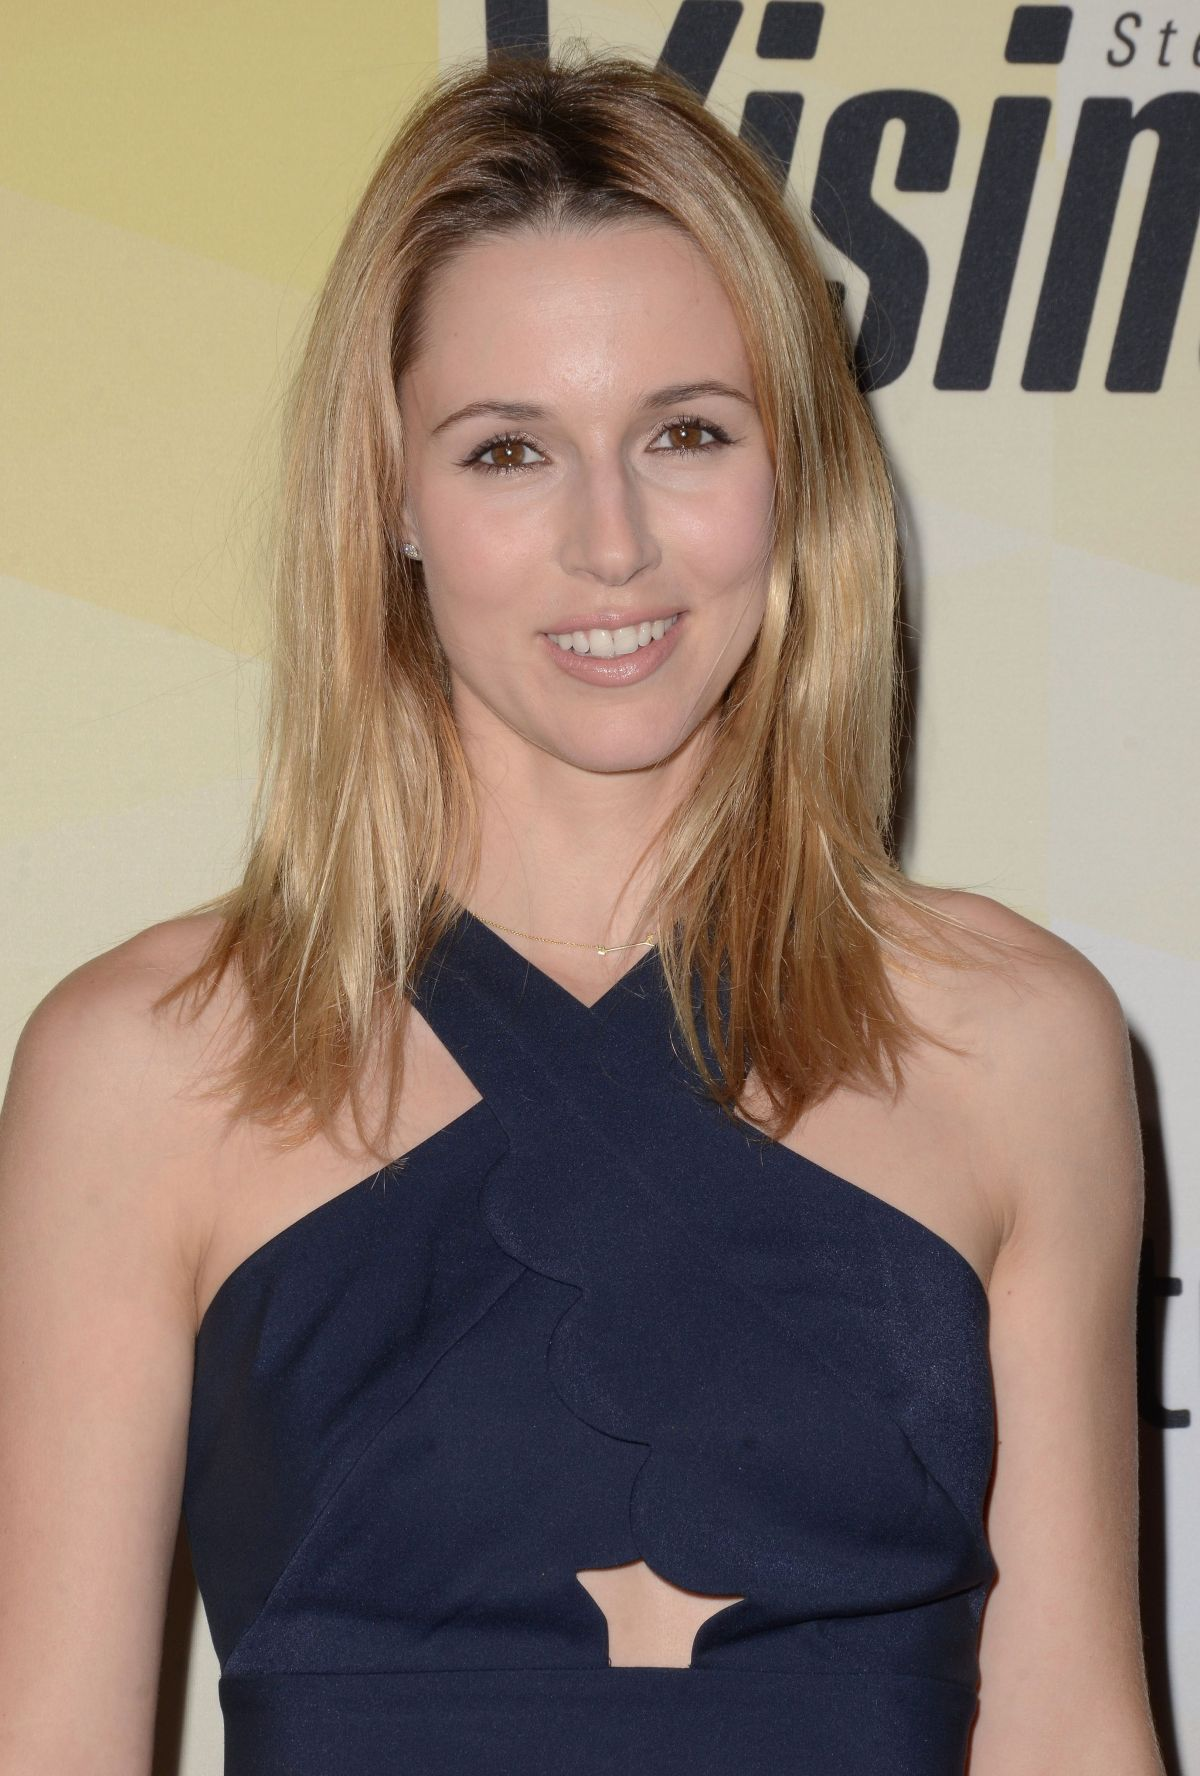 alona tal at imdb s th anniversary party in los angeles  alona tal at imdb s 25th anniversary party in los angeles 10 15 2015